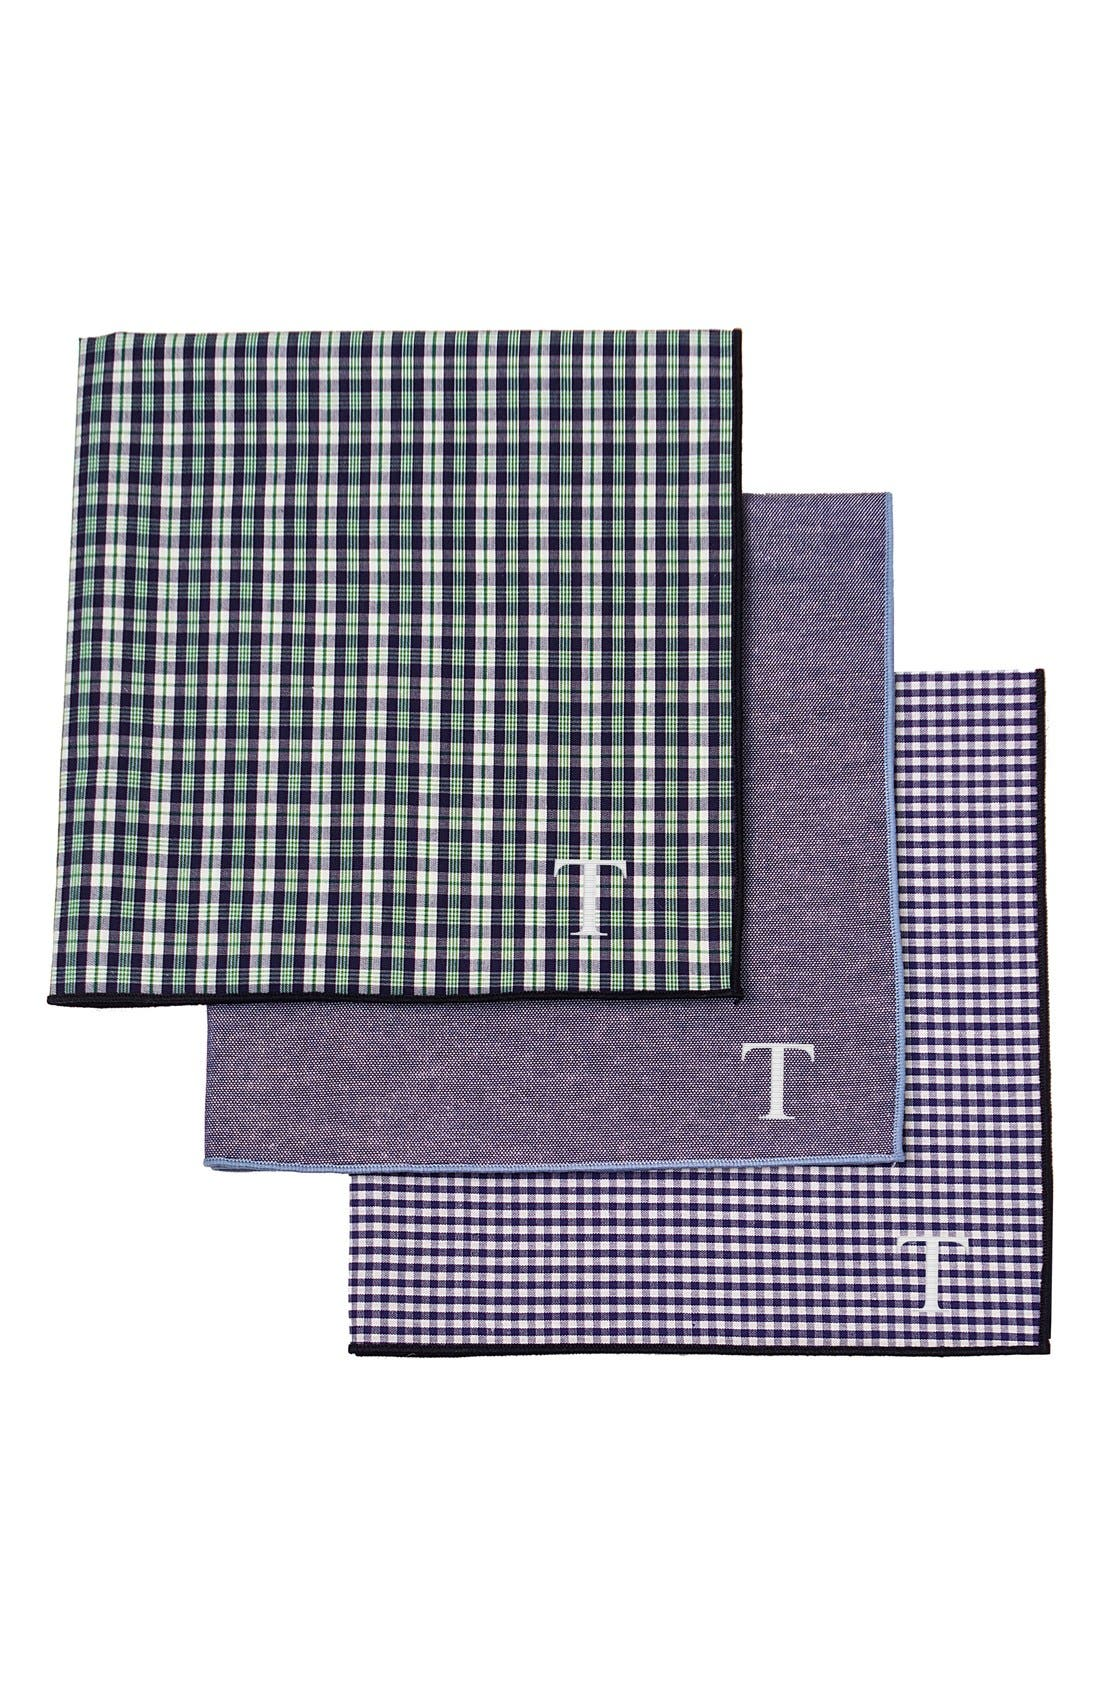 Alternate Image 1 Selected - Cathy's Concepts Monogram Handkerchiefs (Set of 3)